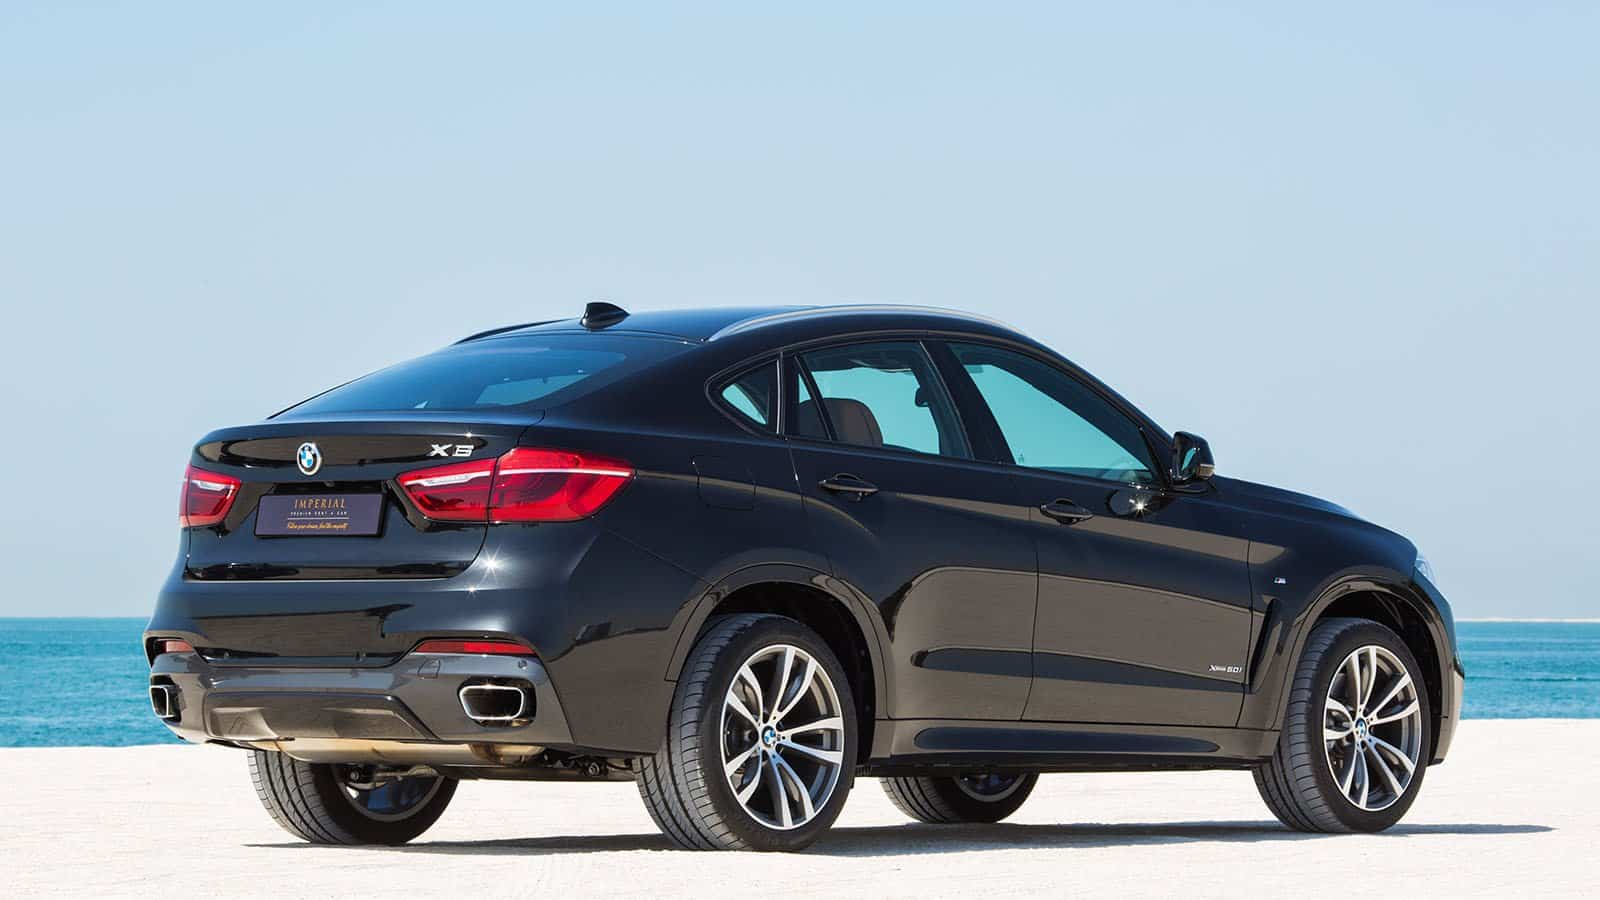 BMW X6 M Plus Sport Car on Rent in Dubai